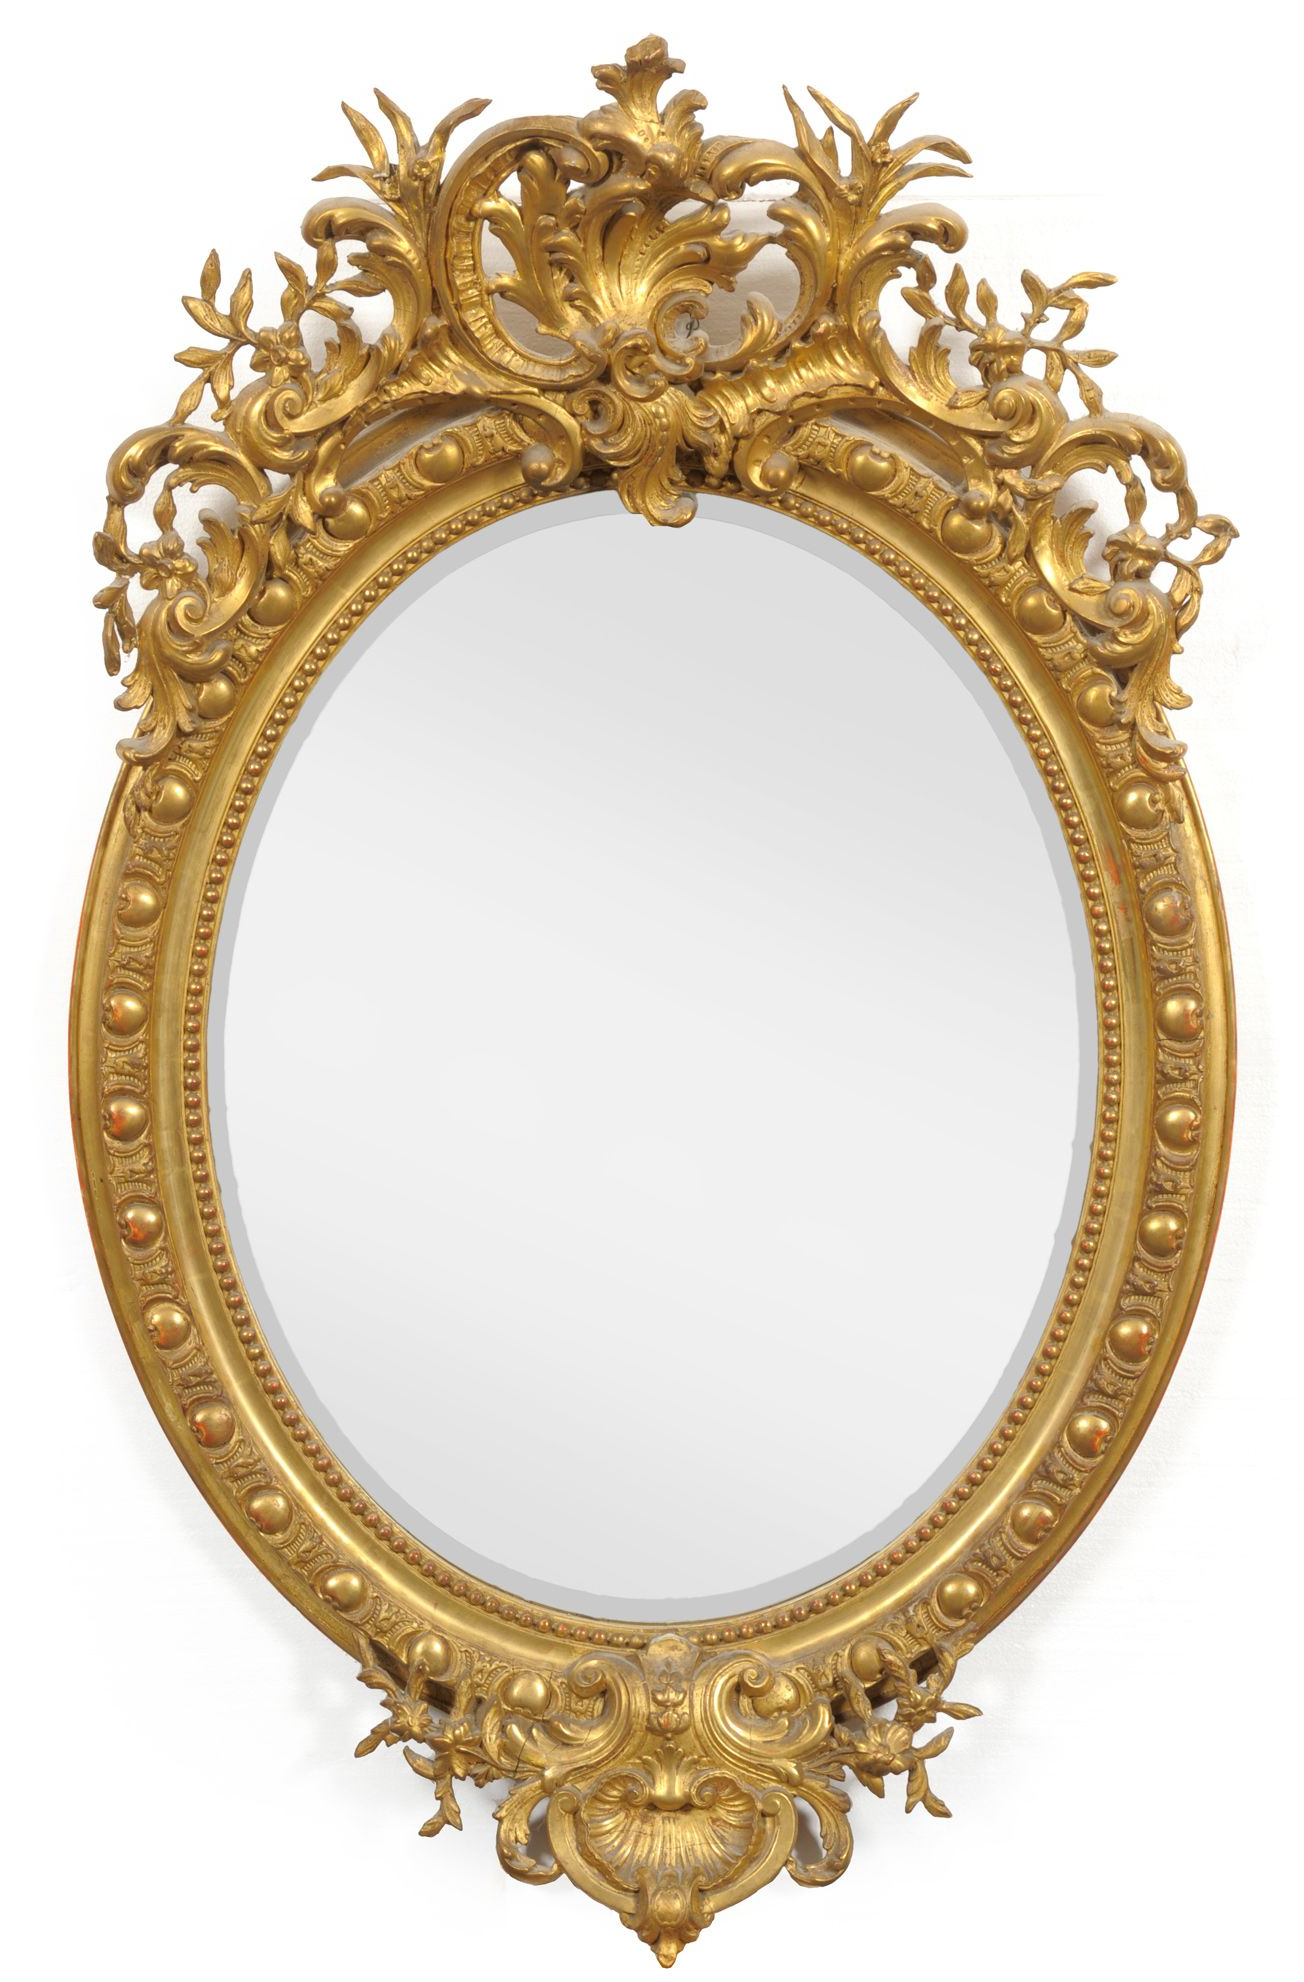 Tennants Auctioneers: An Early Victorian Gilt And Gesso Oval Wall Inside Current Antique Oval Wall Mirrors (Gallery 3 of 20)